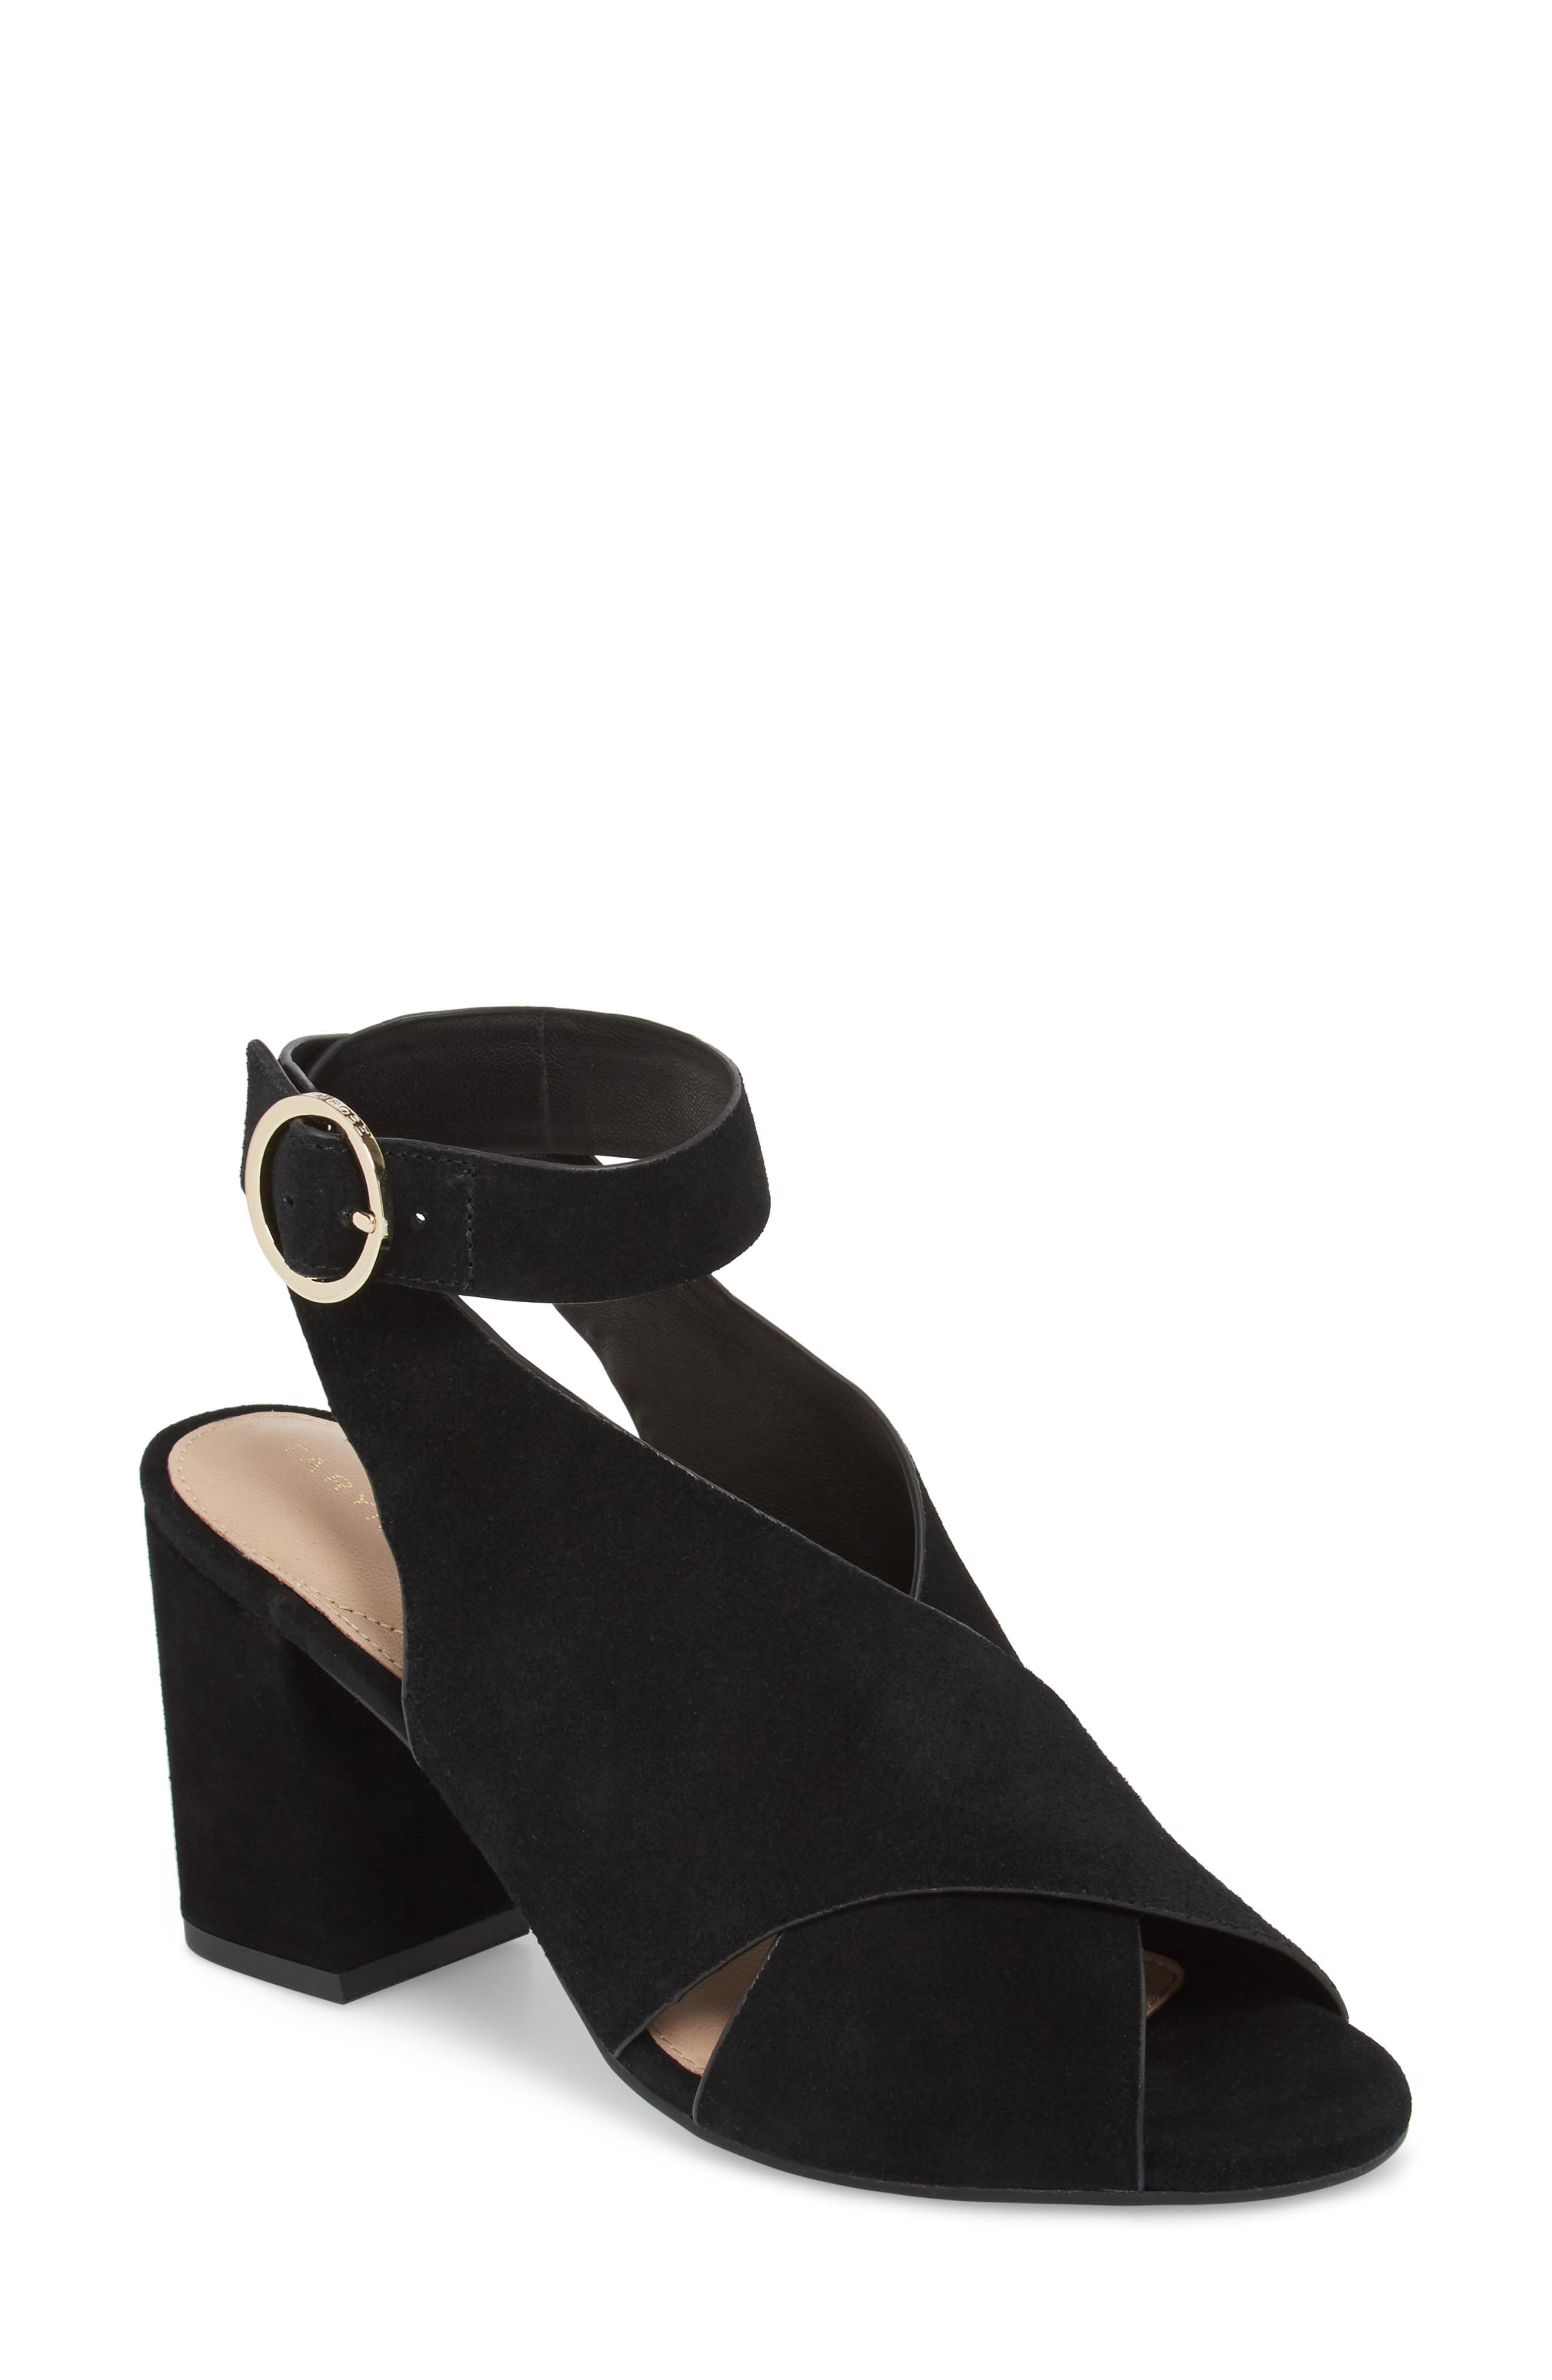 Leila Sandal,                         Main,                         color, 001